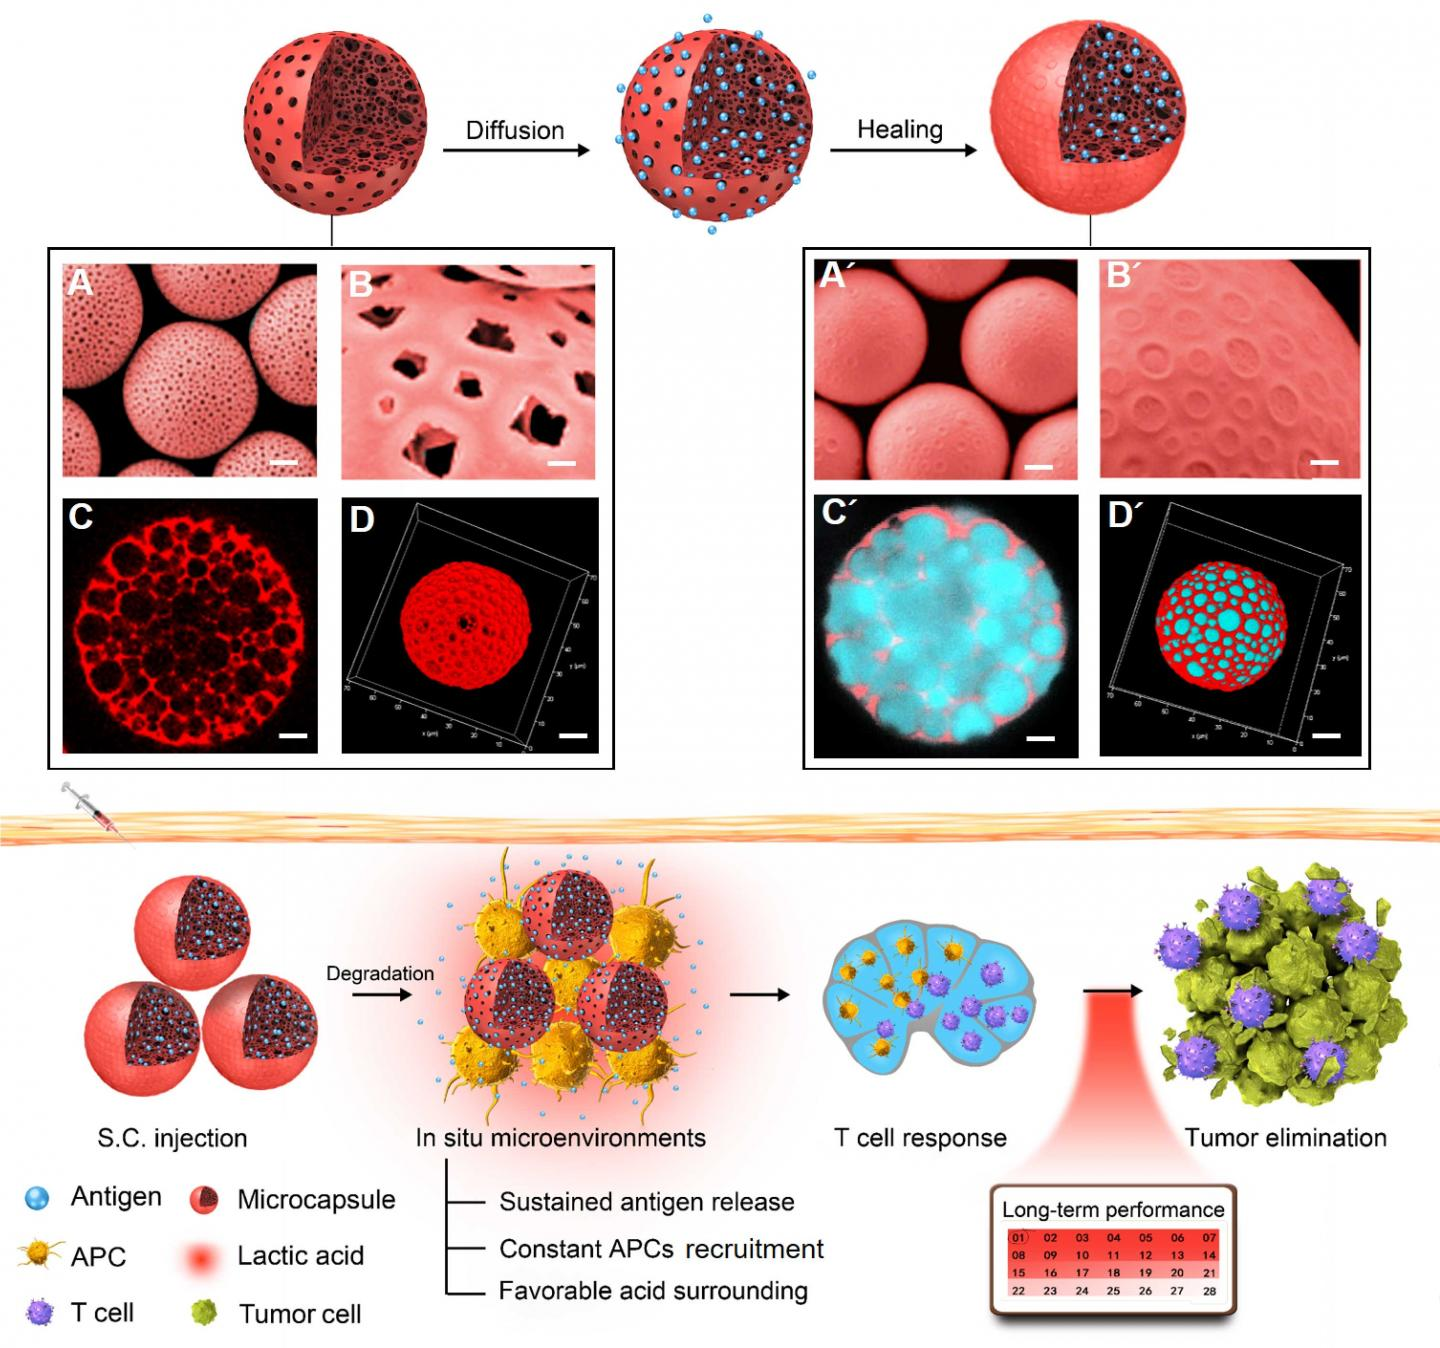 Strategy for Utilizing Self-Healing Microcapsules to Modulate Immunization Microenvironments in Canc